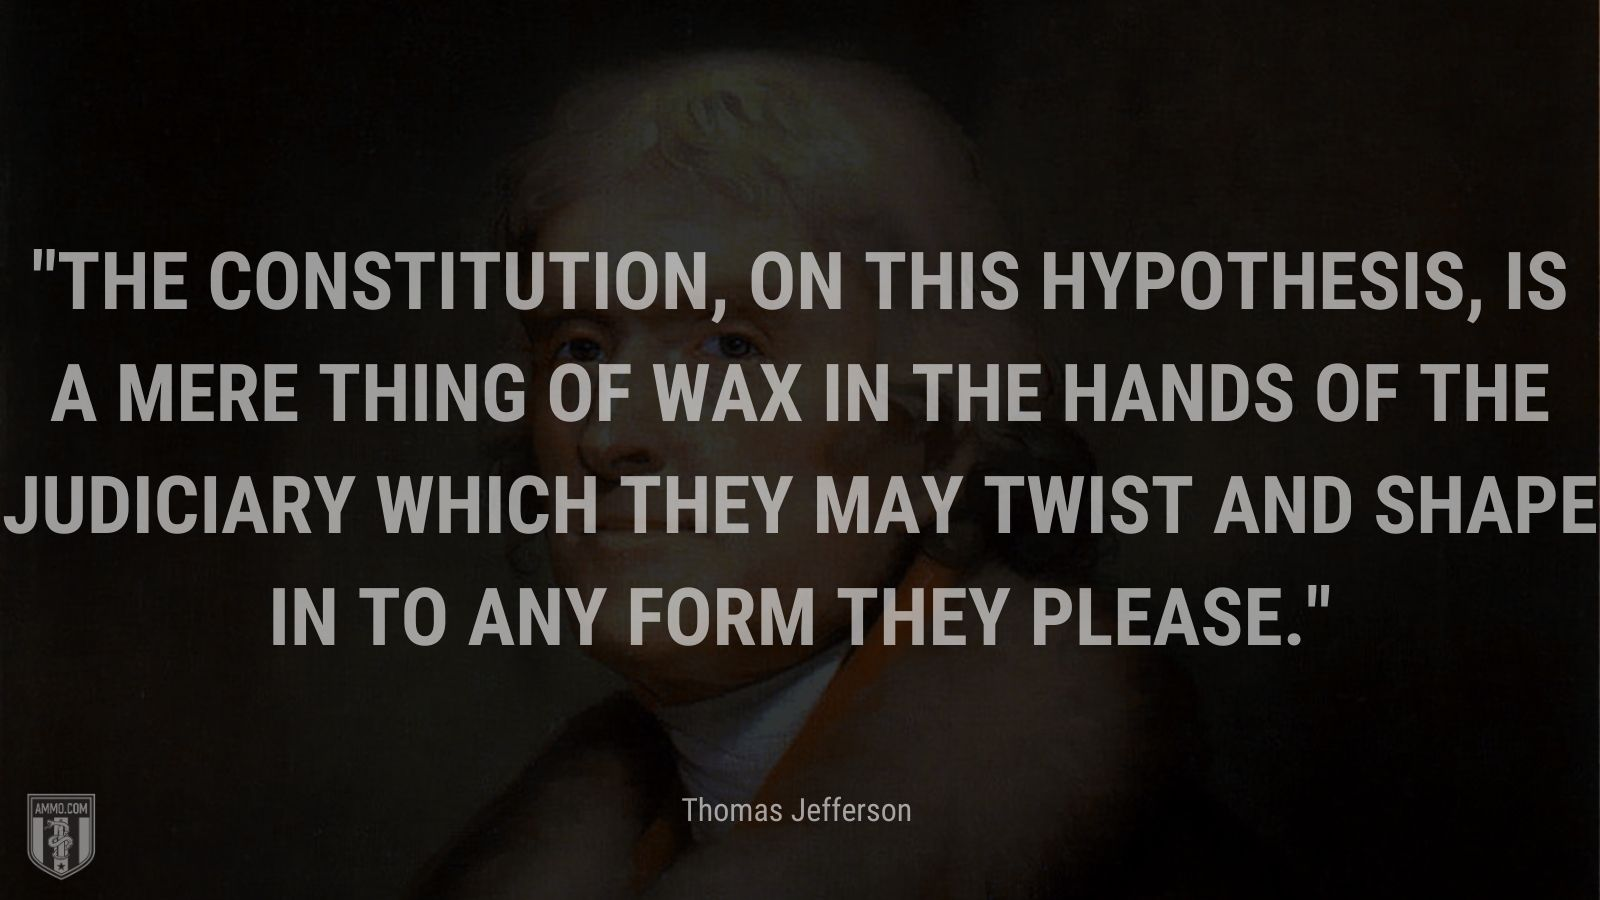 """""""The Constitution, on this hypothesis, is a mere thing of wax in the hands of the judiciary which they may twist and shape in to any form they please."""" - Thomas Jefferson"""